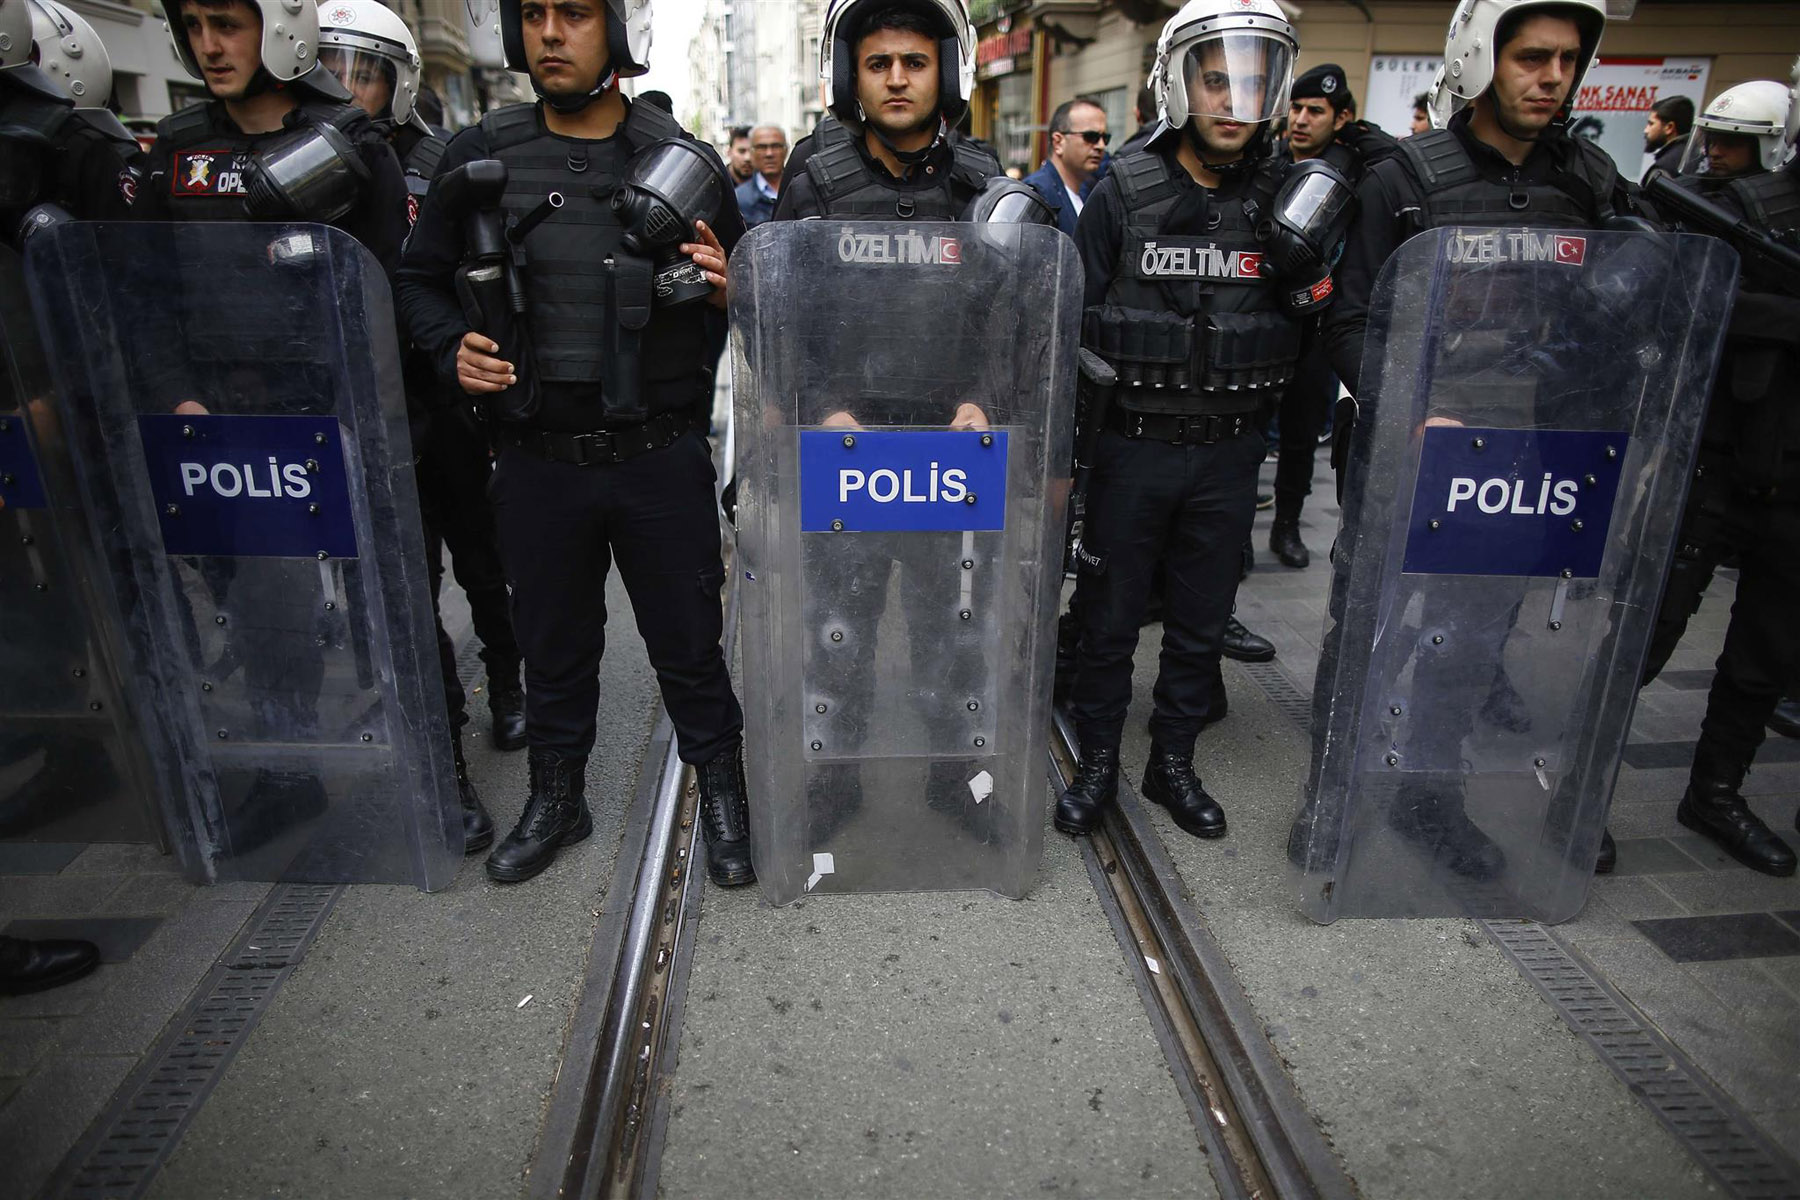 Turkey's police officers look on as supporters of Turkey's main opposition Republican People's Party gather to protest near Taksim Square, last April. (AP)